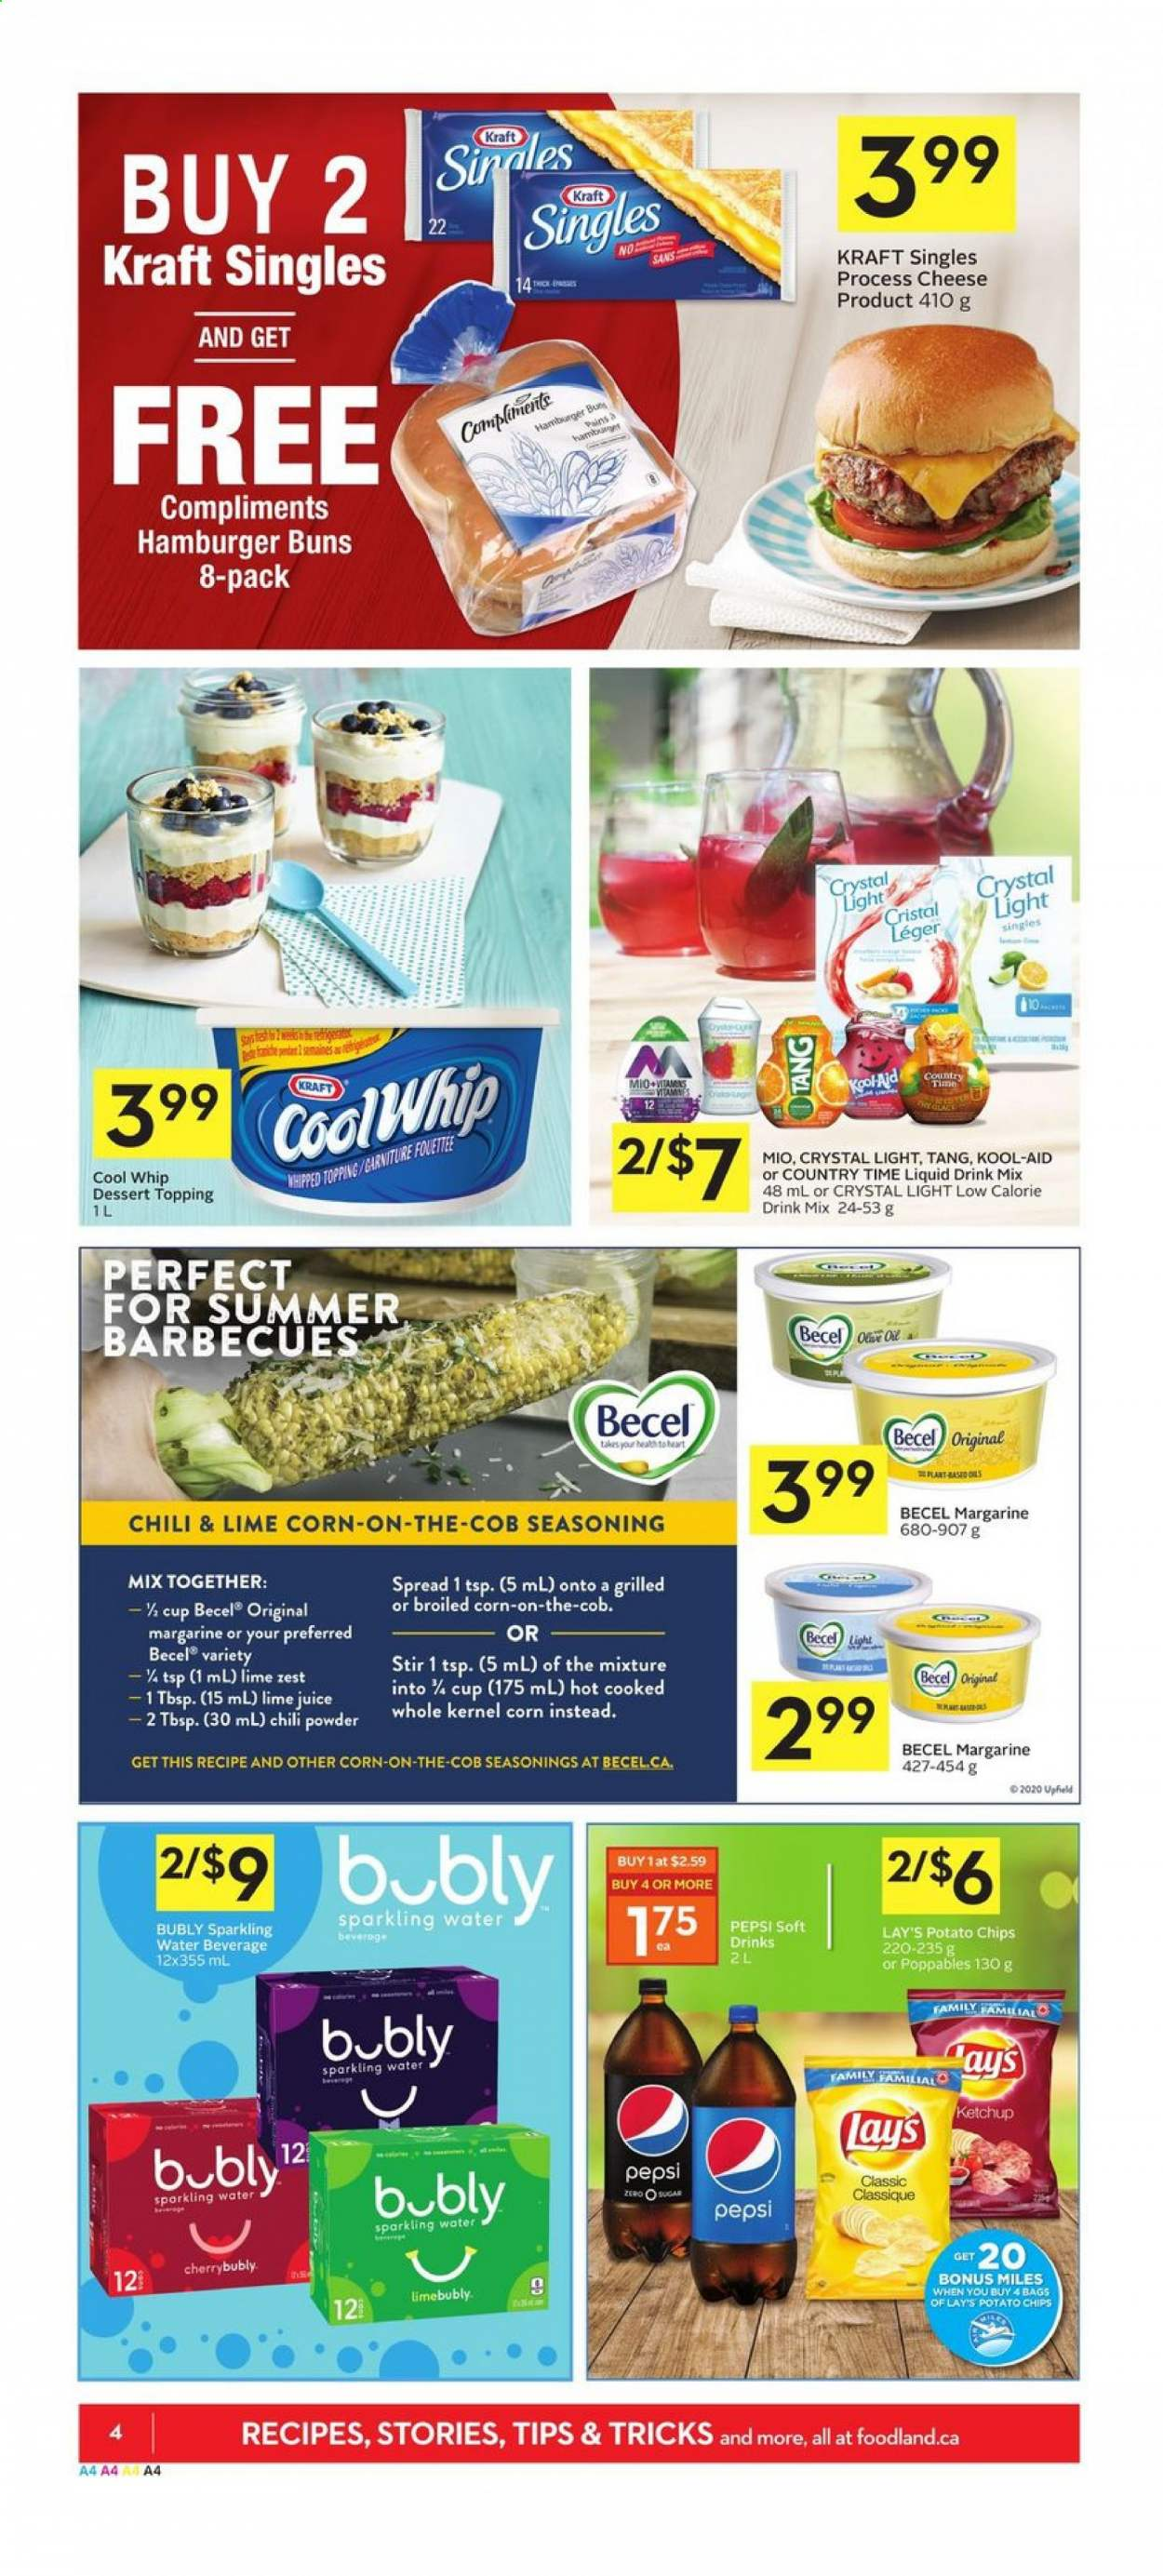 Foodland Flyer - July 23, 2020 - July 29, 2020 - Sales products - cool whip, corn, cup, margarine, rack, ketchup, potato chips, pepsi, chips, cheese, juice, dessert, burgerON DUPLICATE KEY UPDATE `name` = VALUES(`name`); burgers, sparkling water, hamburger, lay's, topping, cool. Page 4.